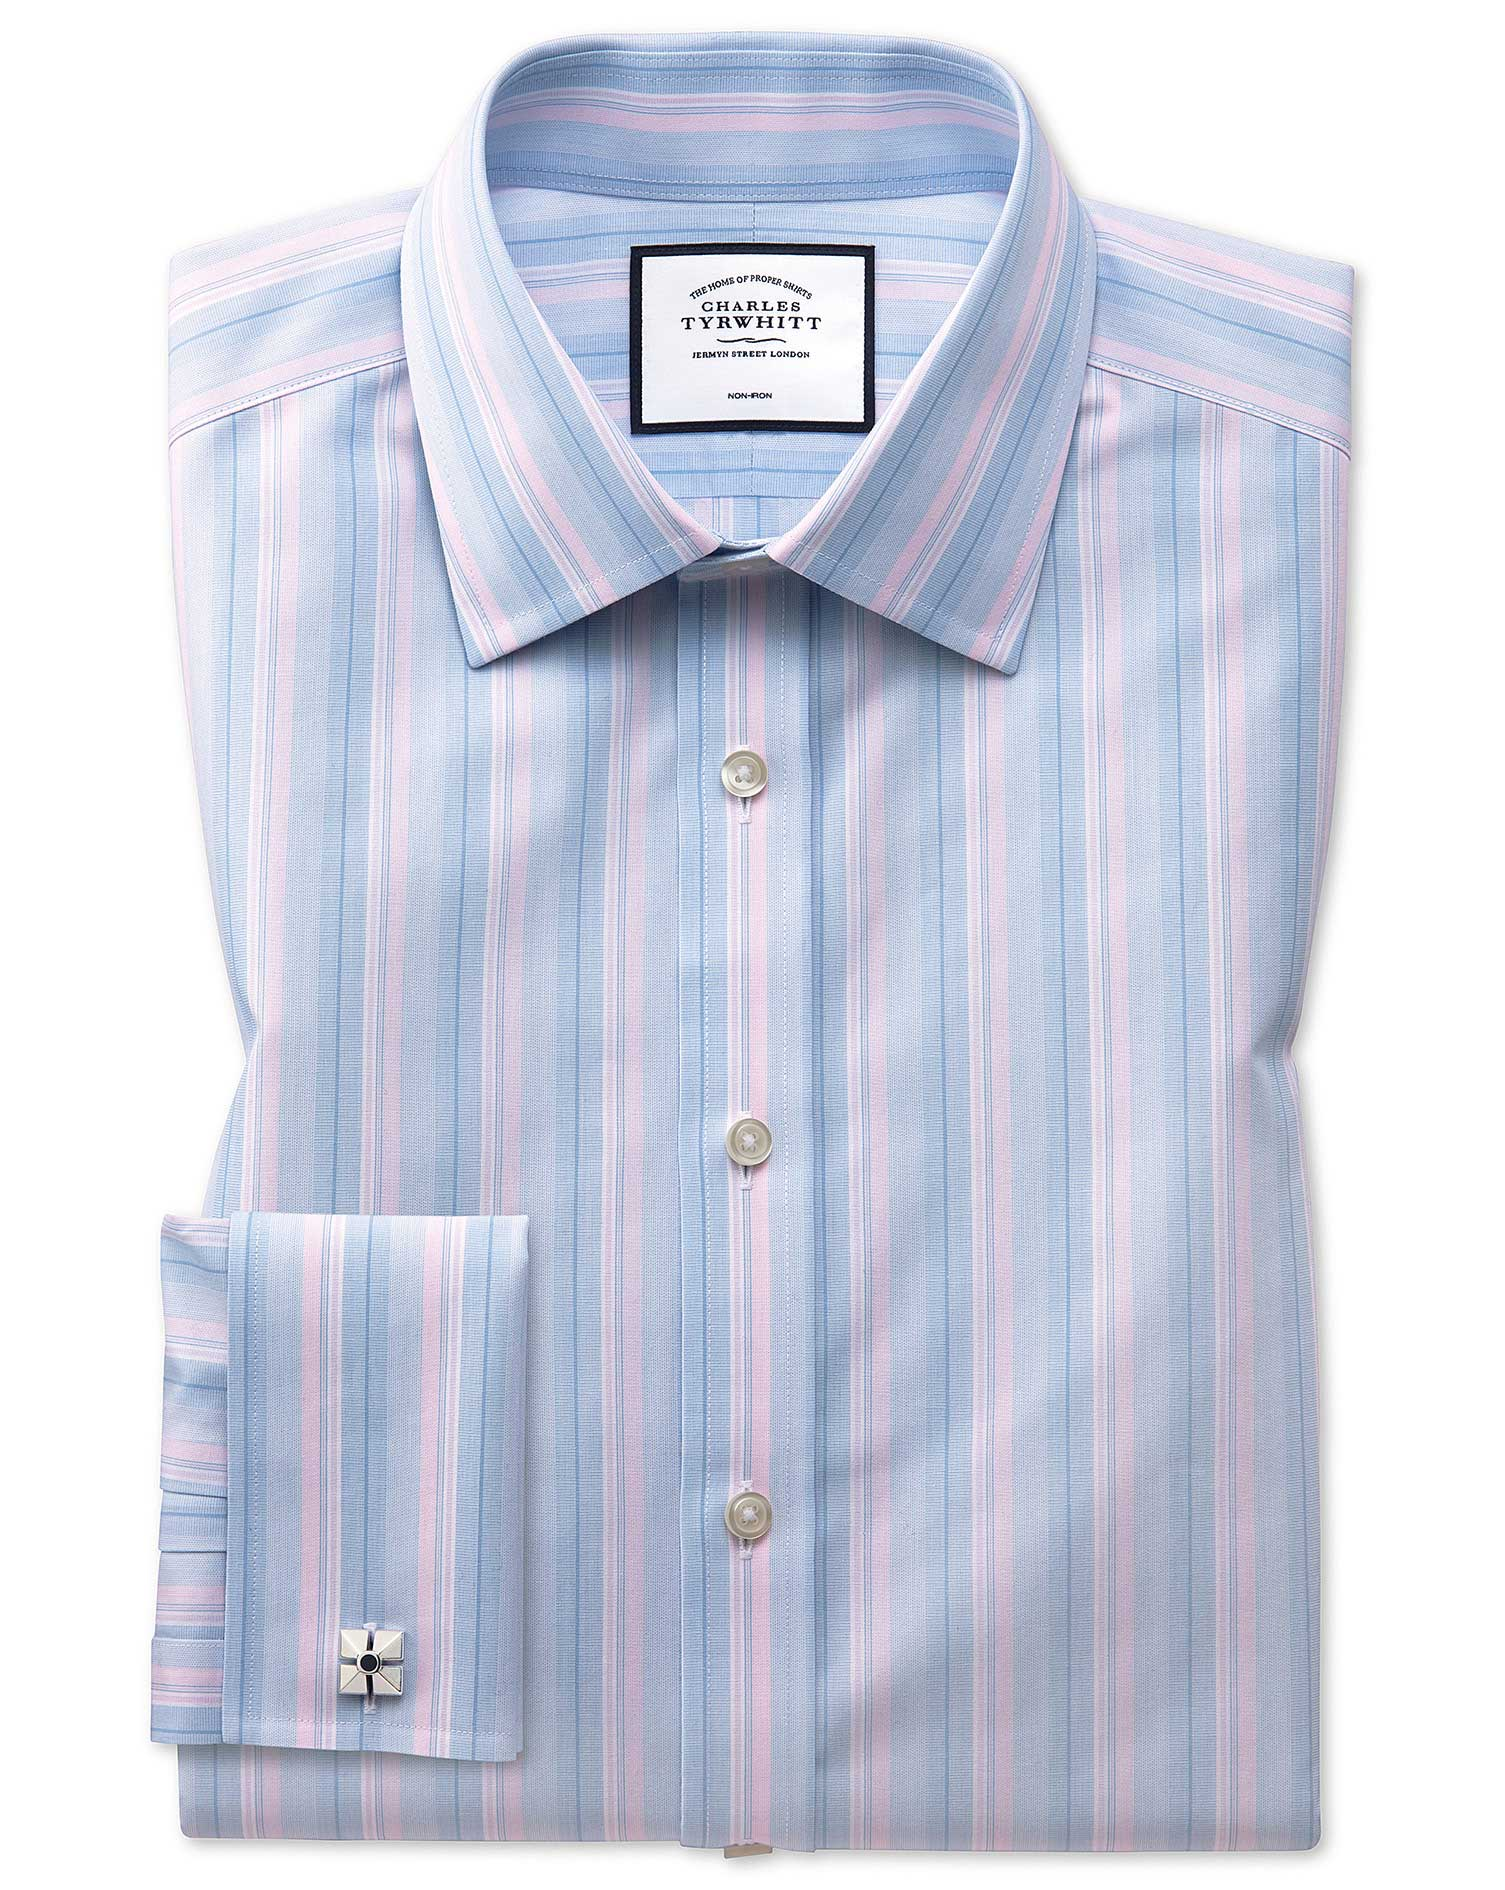 Extra Slim Fit Non-Iron Pink and Blue Multi Stripe Cotton Formal Shirt Single Cuff Size 16.5/34 by C